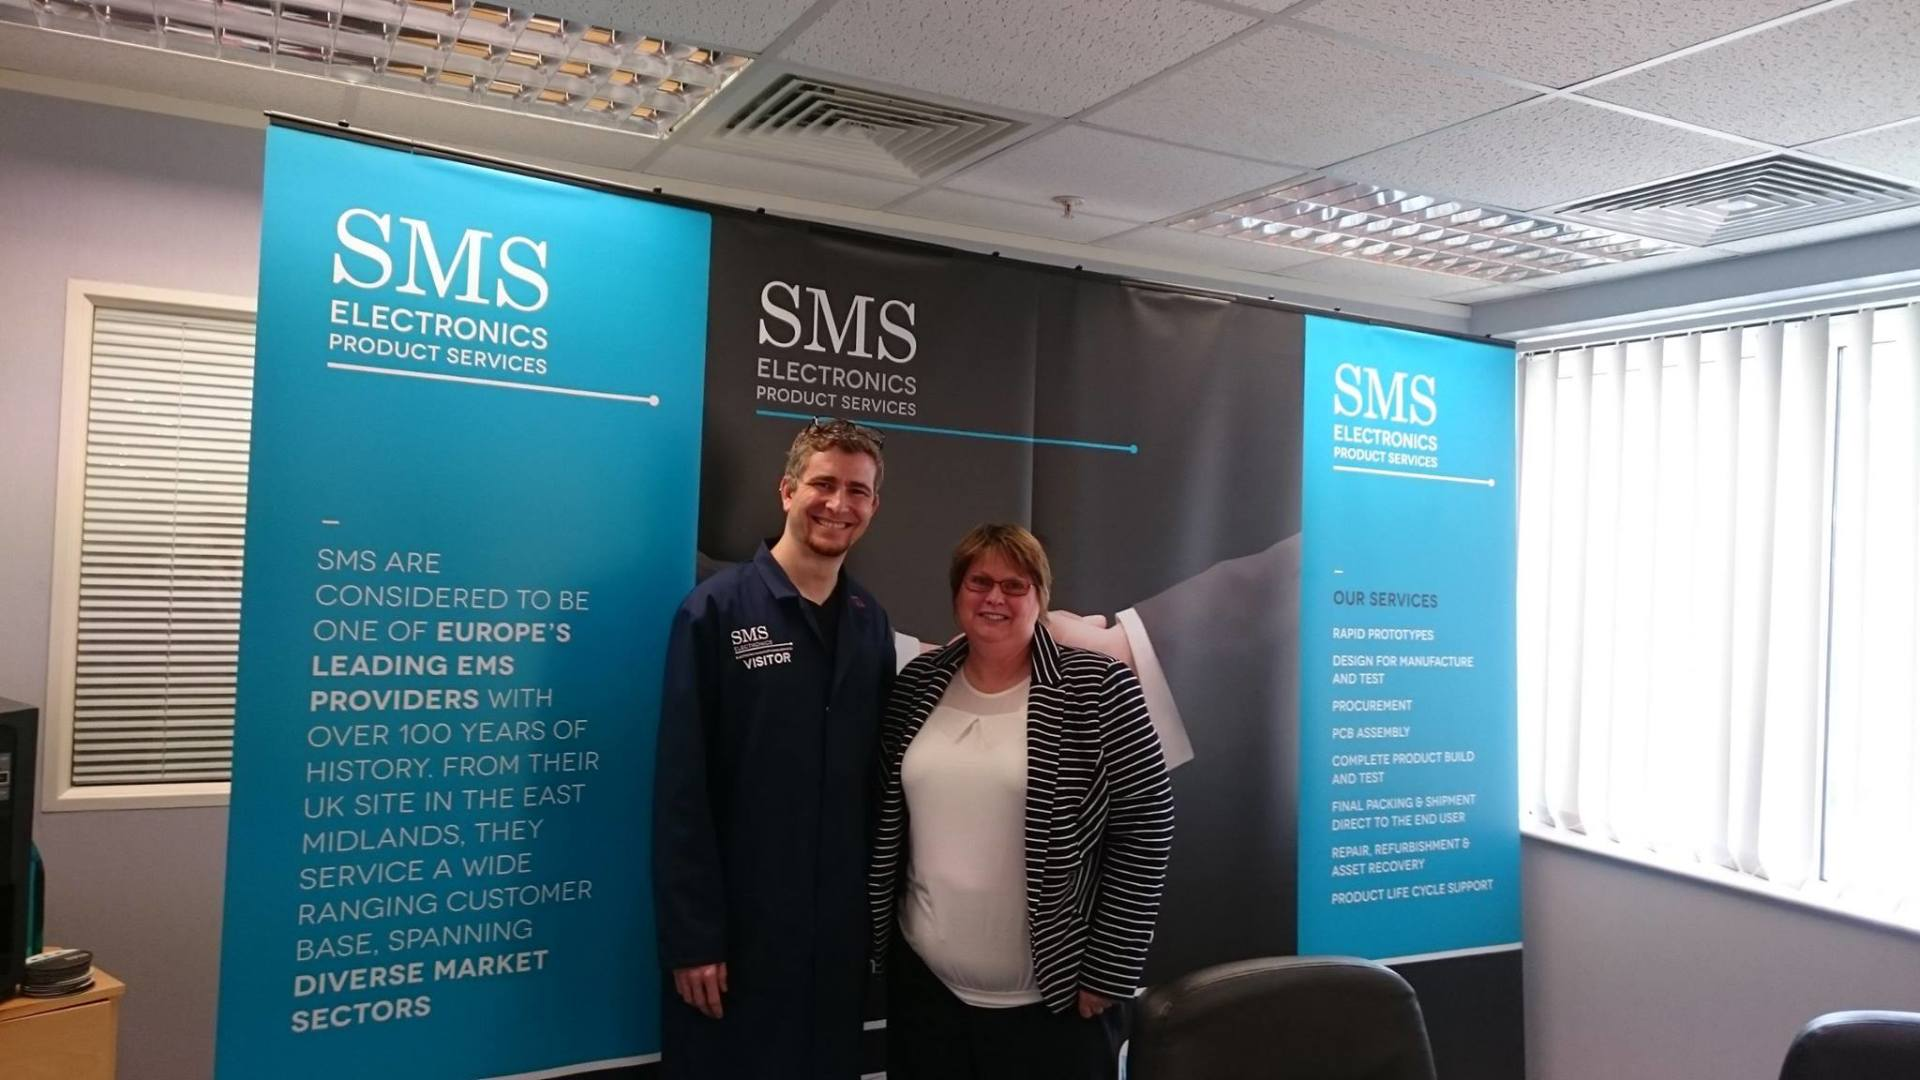 Henrique with Anita Brown, the Business Development Manager at SMS